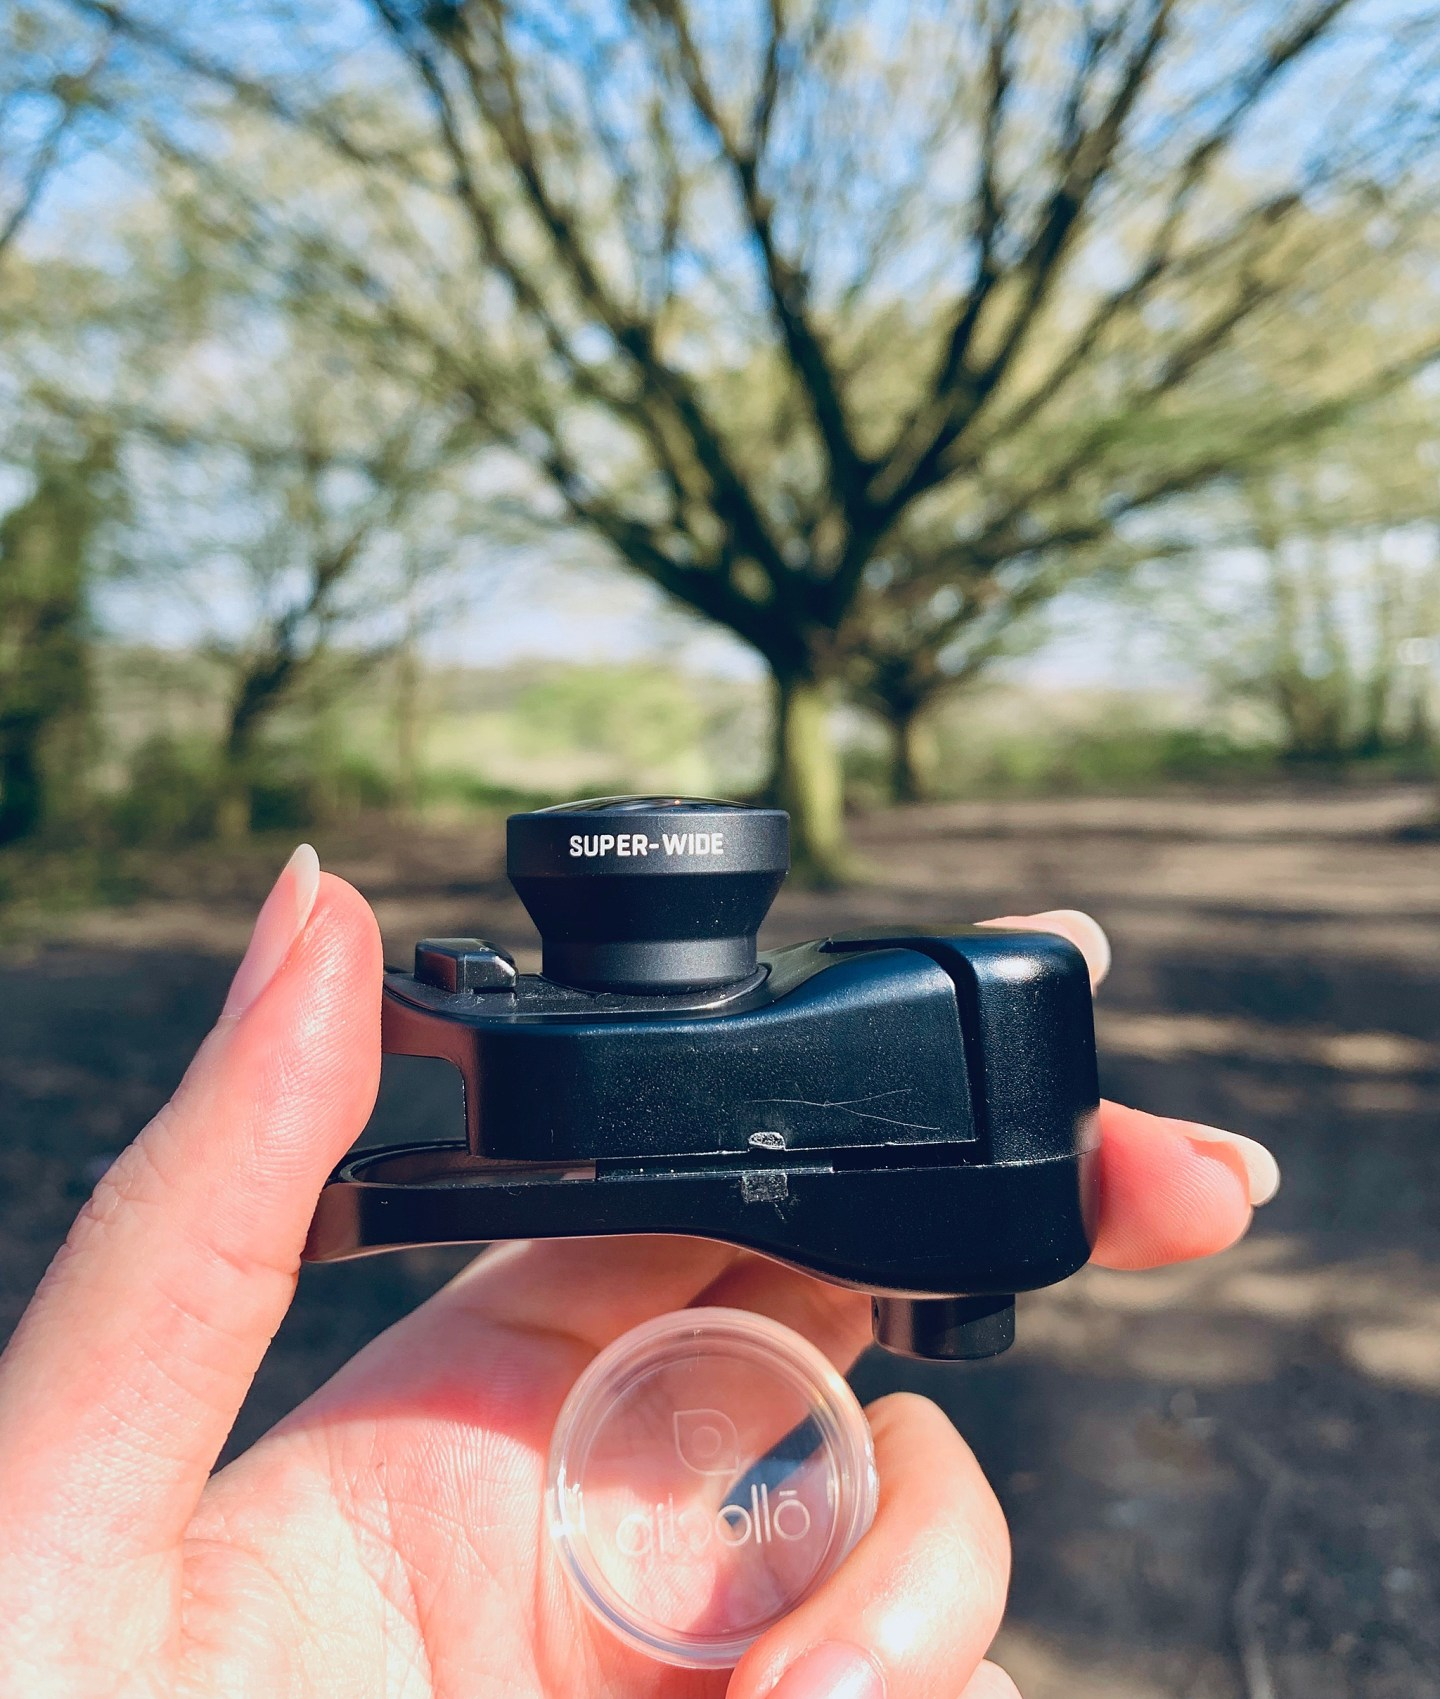 Olloclip Lens Blogger Review